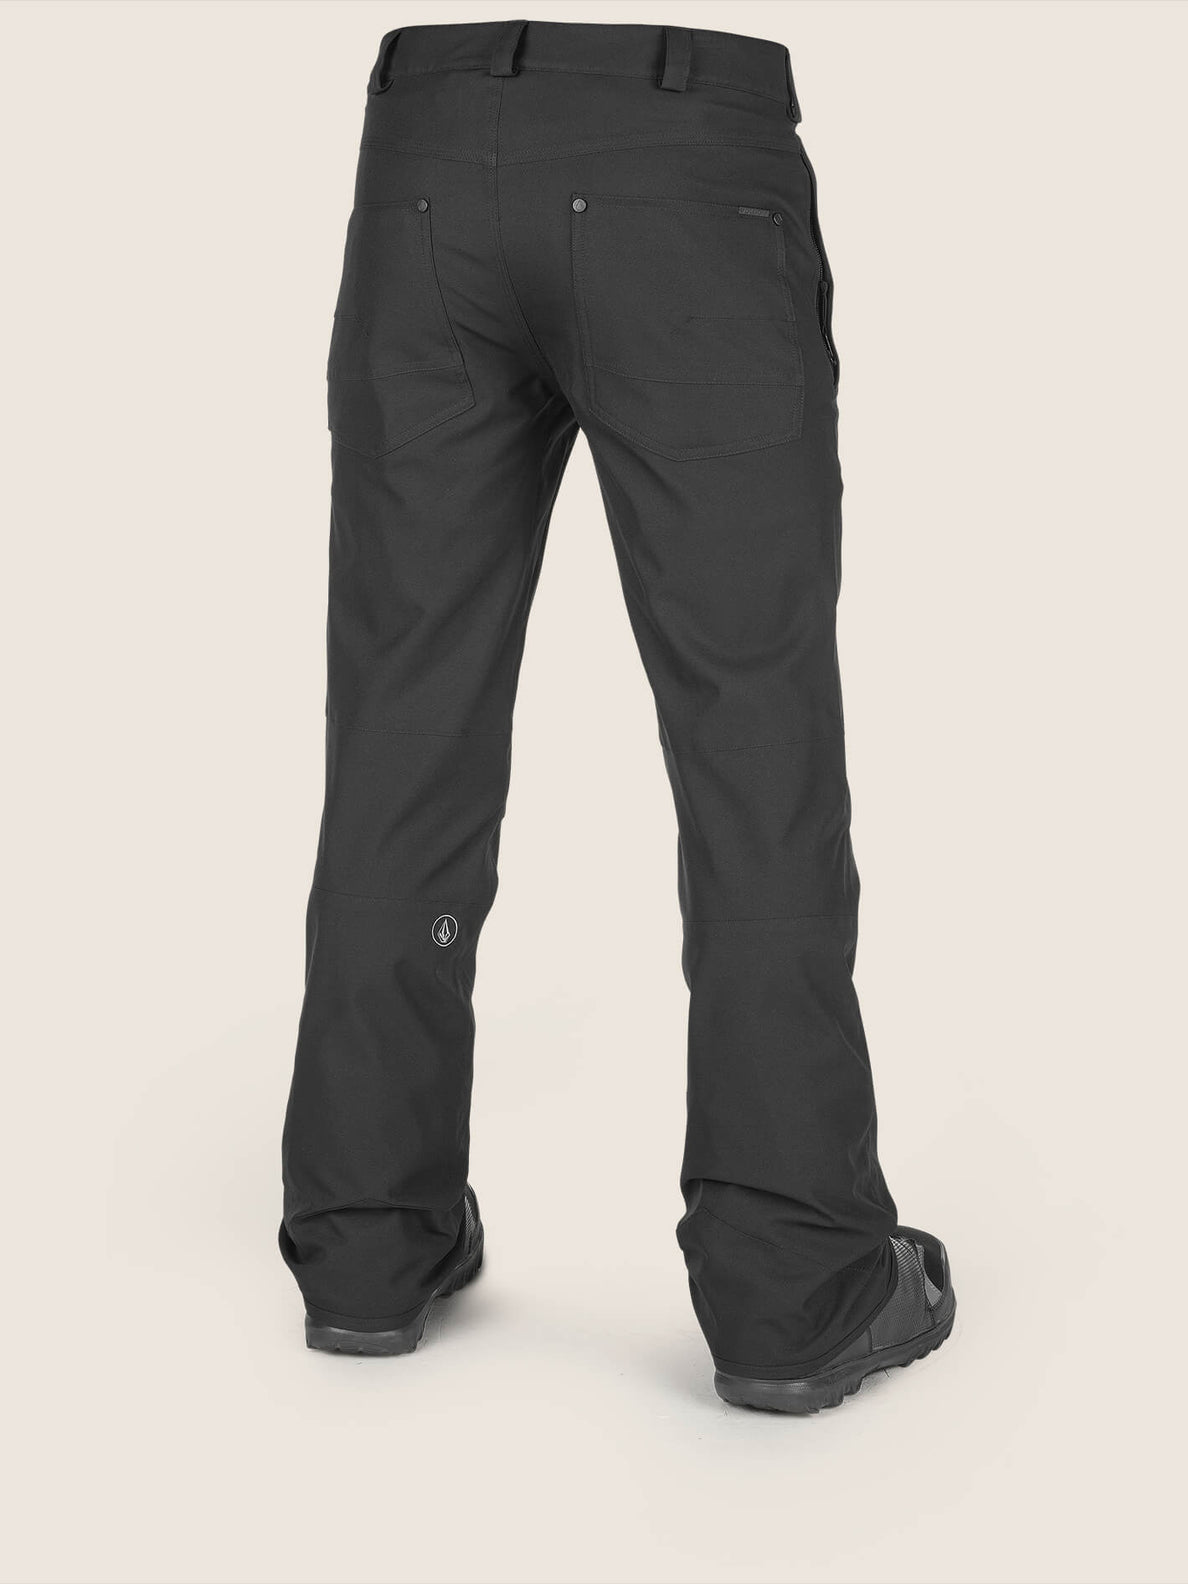 (Last Season) Mens Klocker Tight Pants - Black